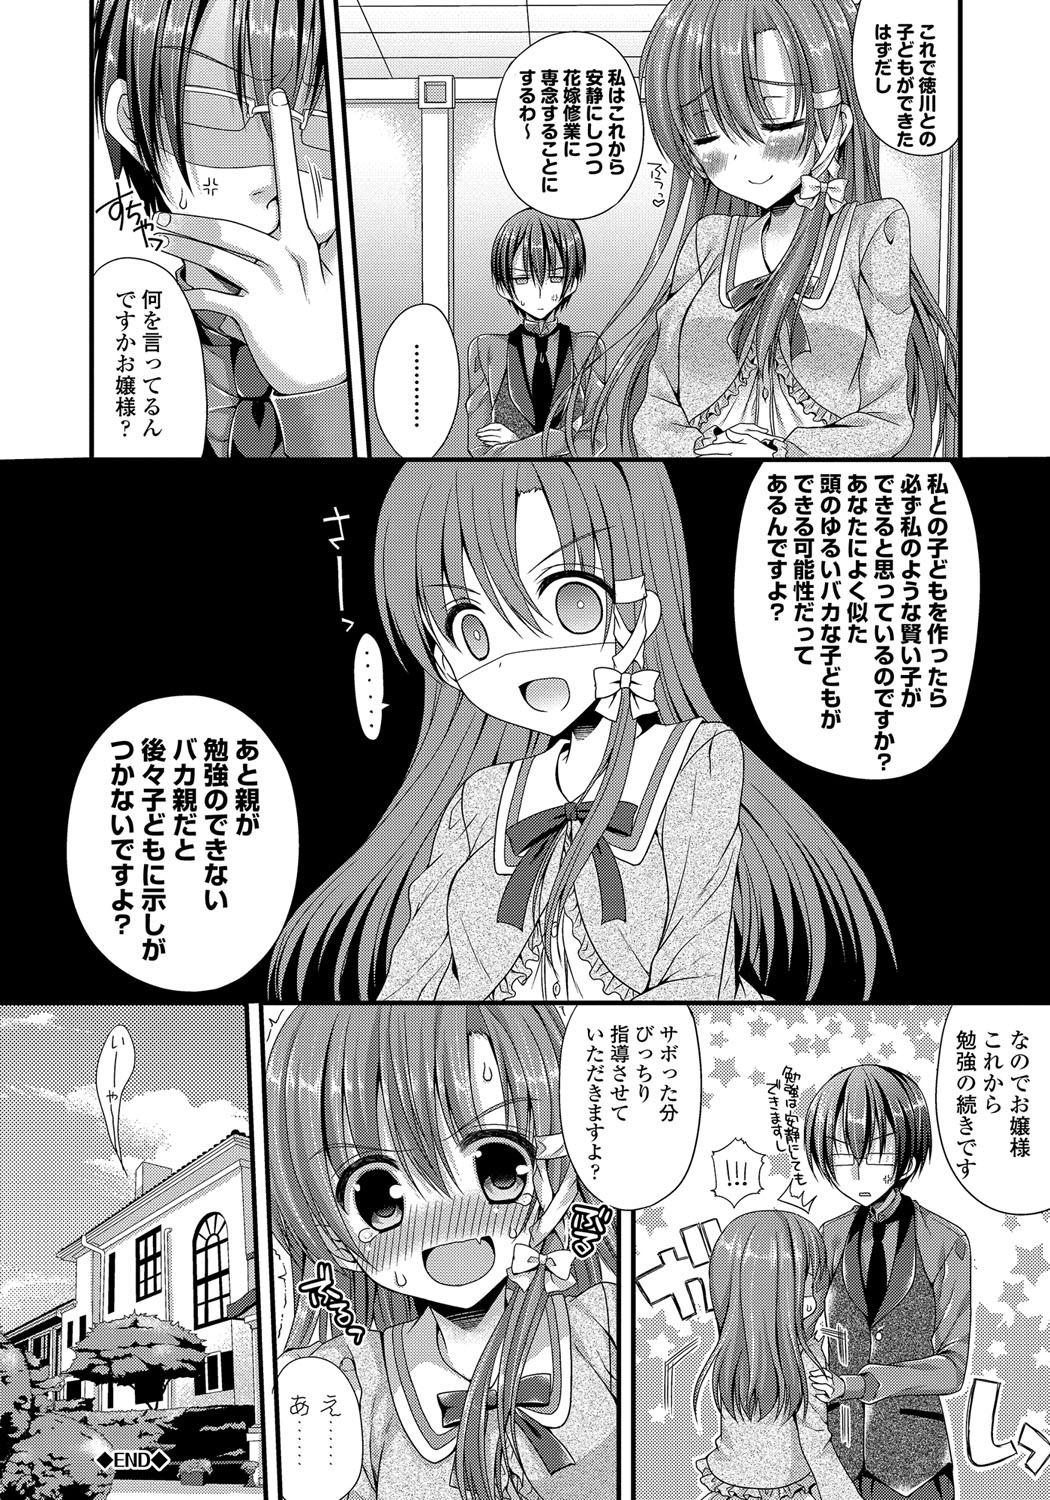 Kanojo to Hajimeteno - For the First Time with Her 22